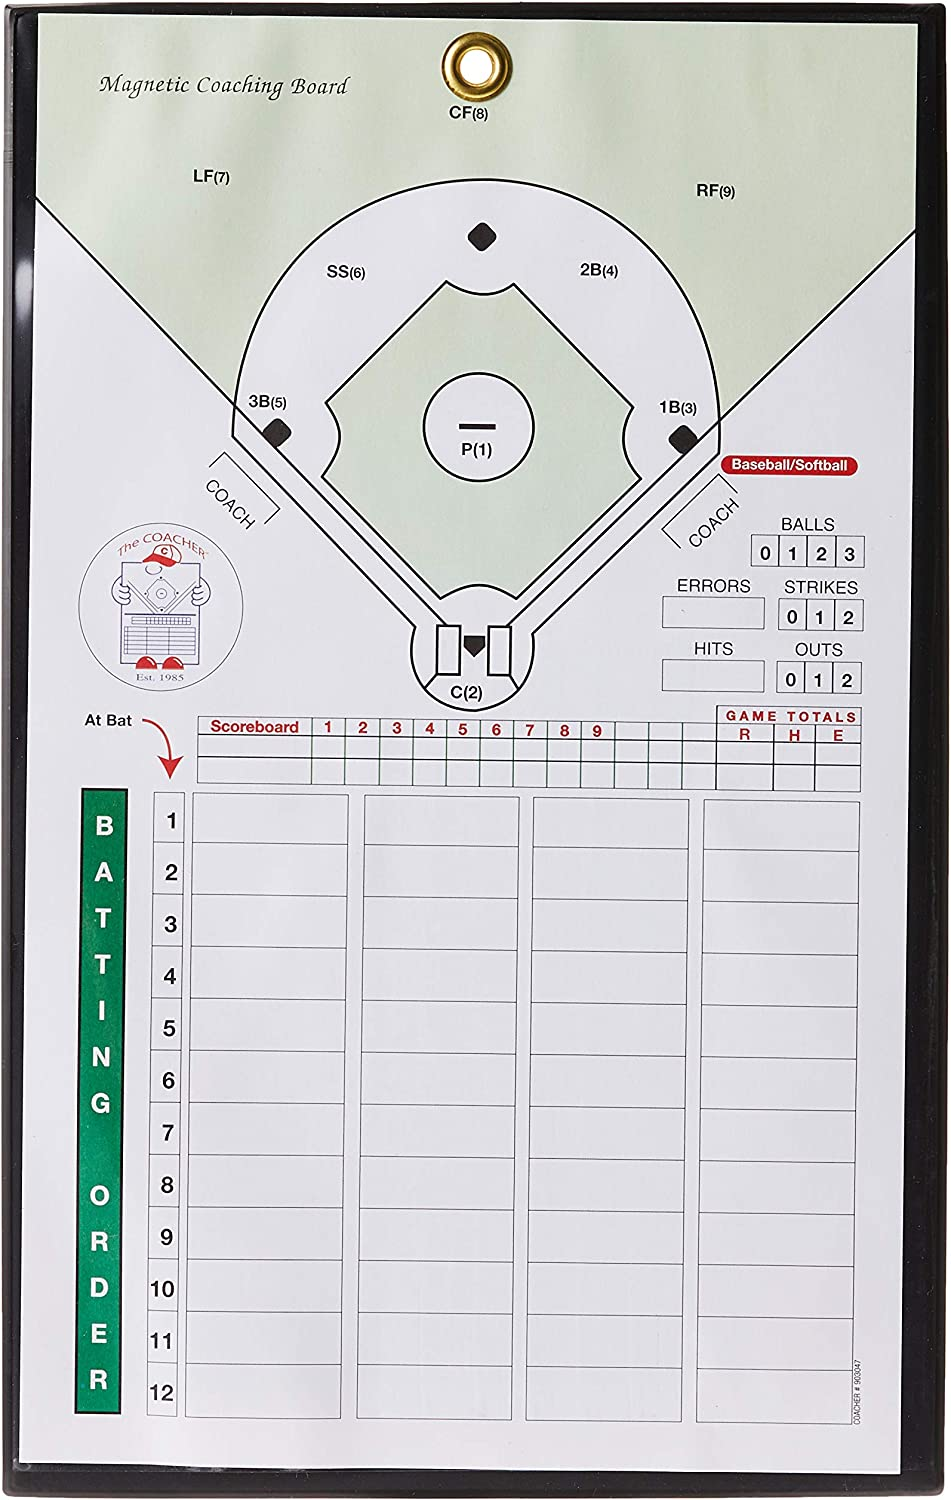 View 21 Inning Baseball Lineup Template Background : Fill, Sign And Intended For Free Baseball Lineup Card Template